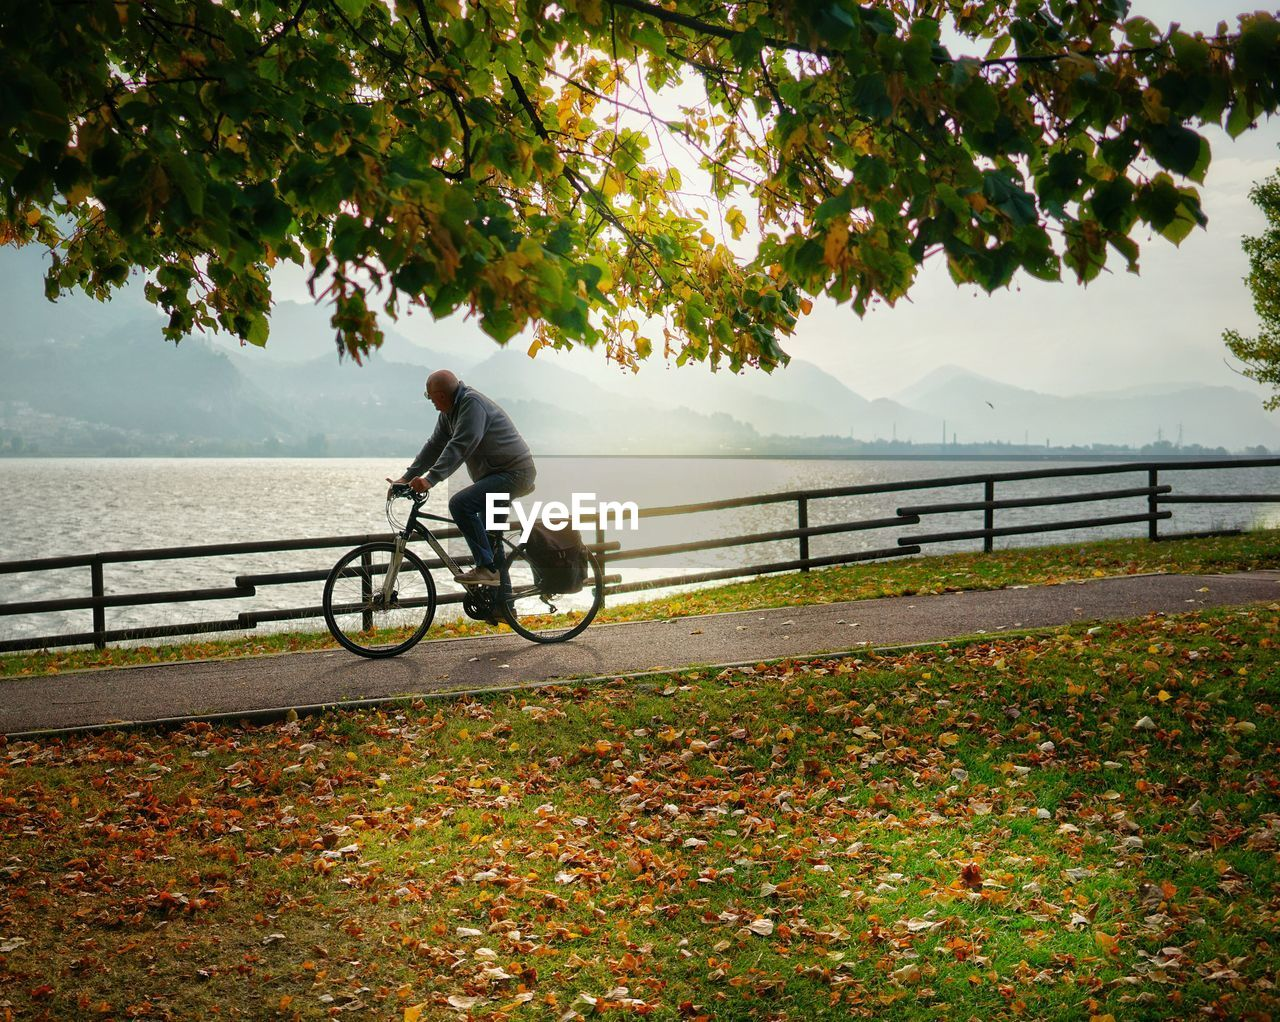 transportation, bicycle, plant, real people, land vehicle, riding, tree, ride, one person, activity, nature, cycling, lifestyles, leisure activity, mode of transportation, full length, beauty in nature, day, sport, outdoors, change